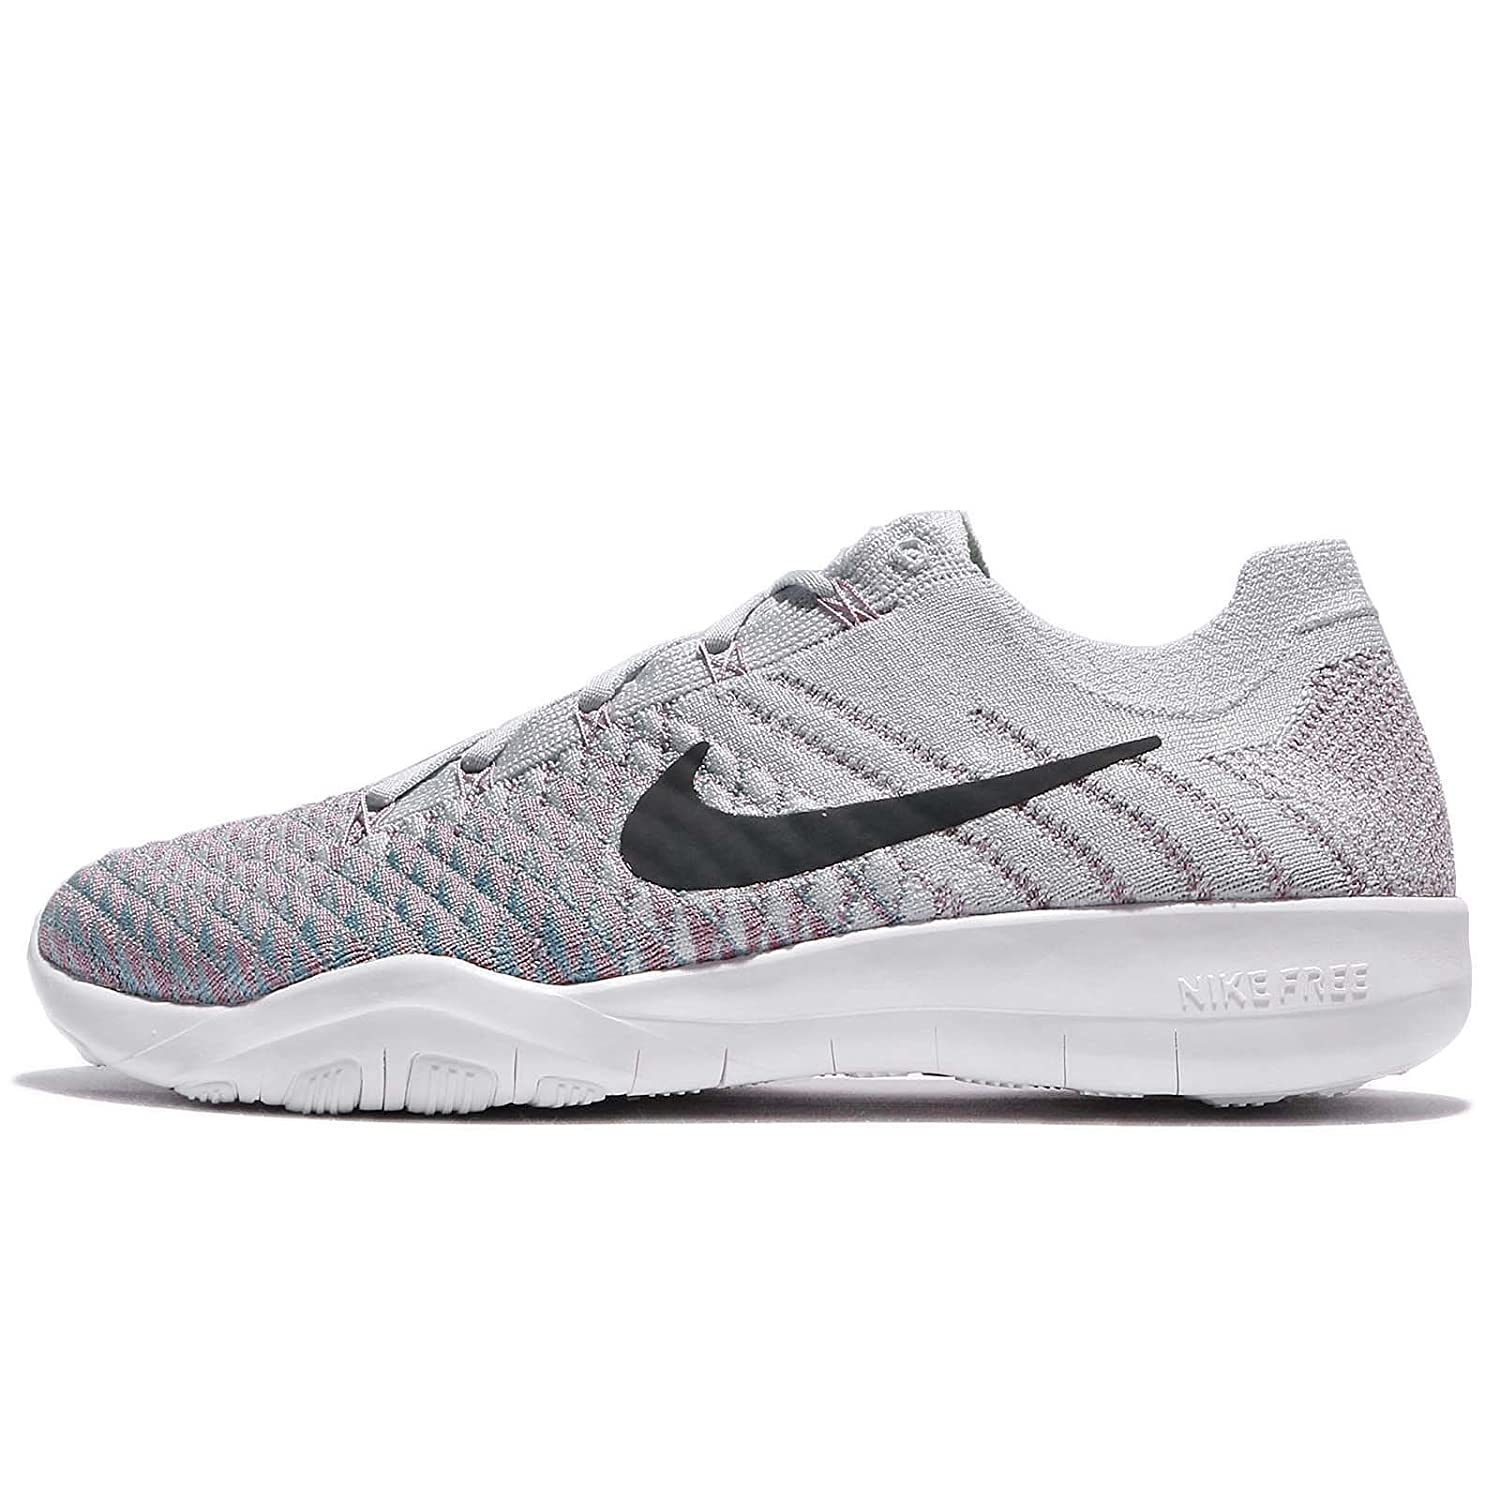 NIKE Free TR Flyknit 2 Womens Running Shoes B078HYXGG2 8 B(M) US|Pure Platinum/Anthracite